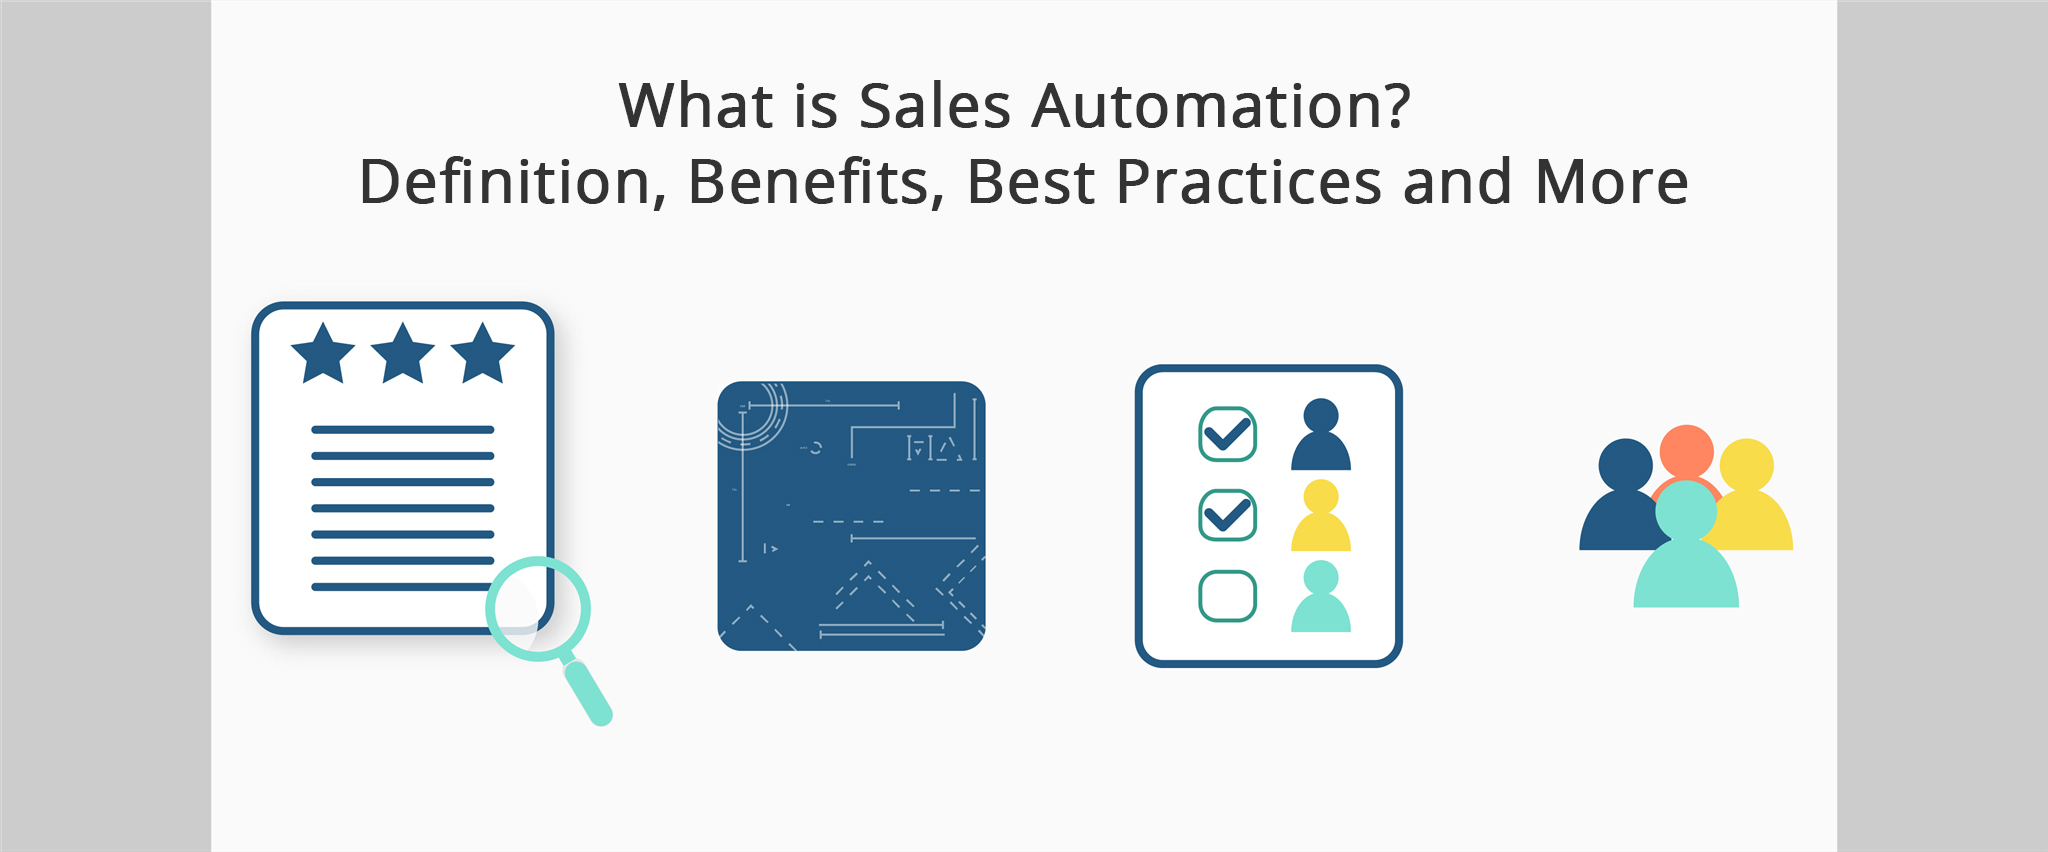 What is Sales Automation? Definition, Benefits, Best Practices and More